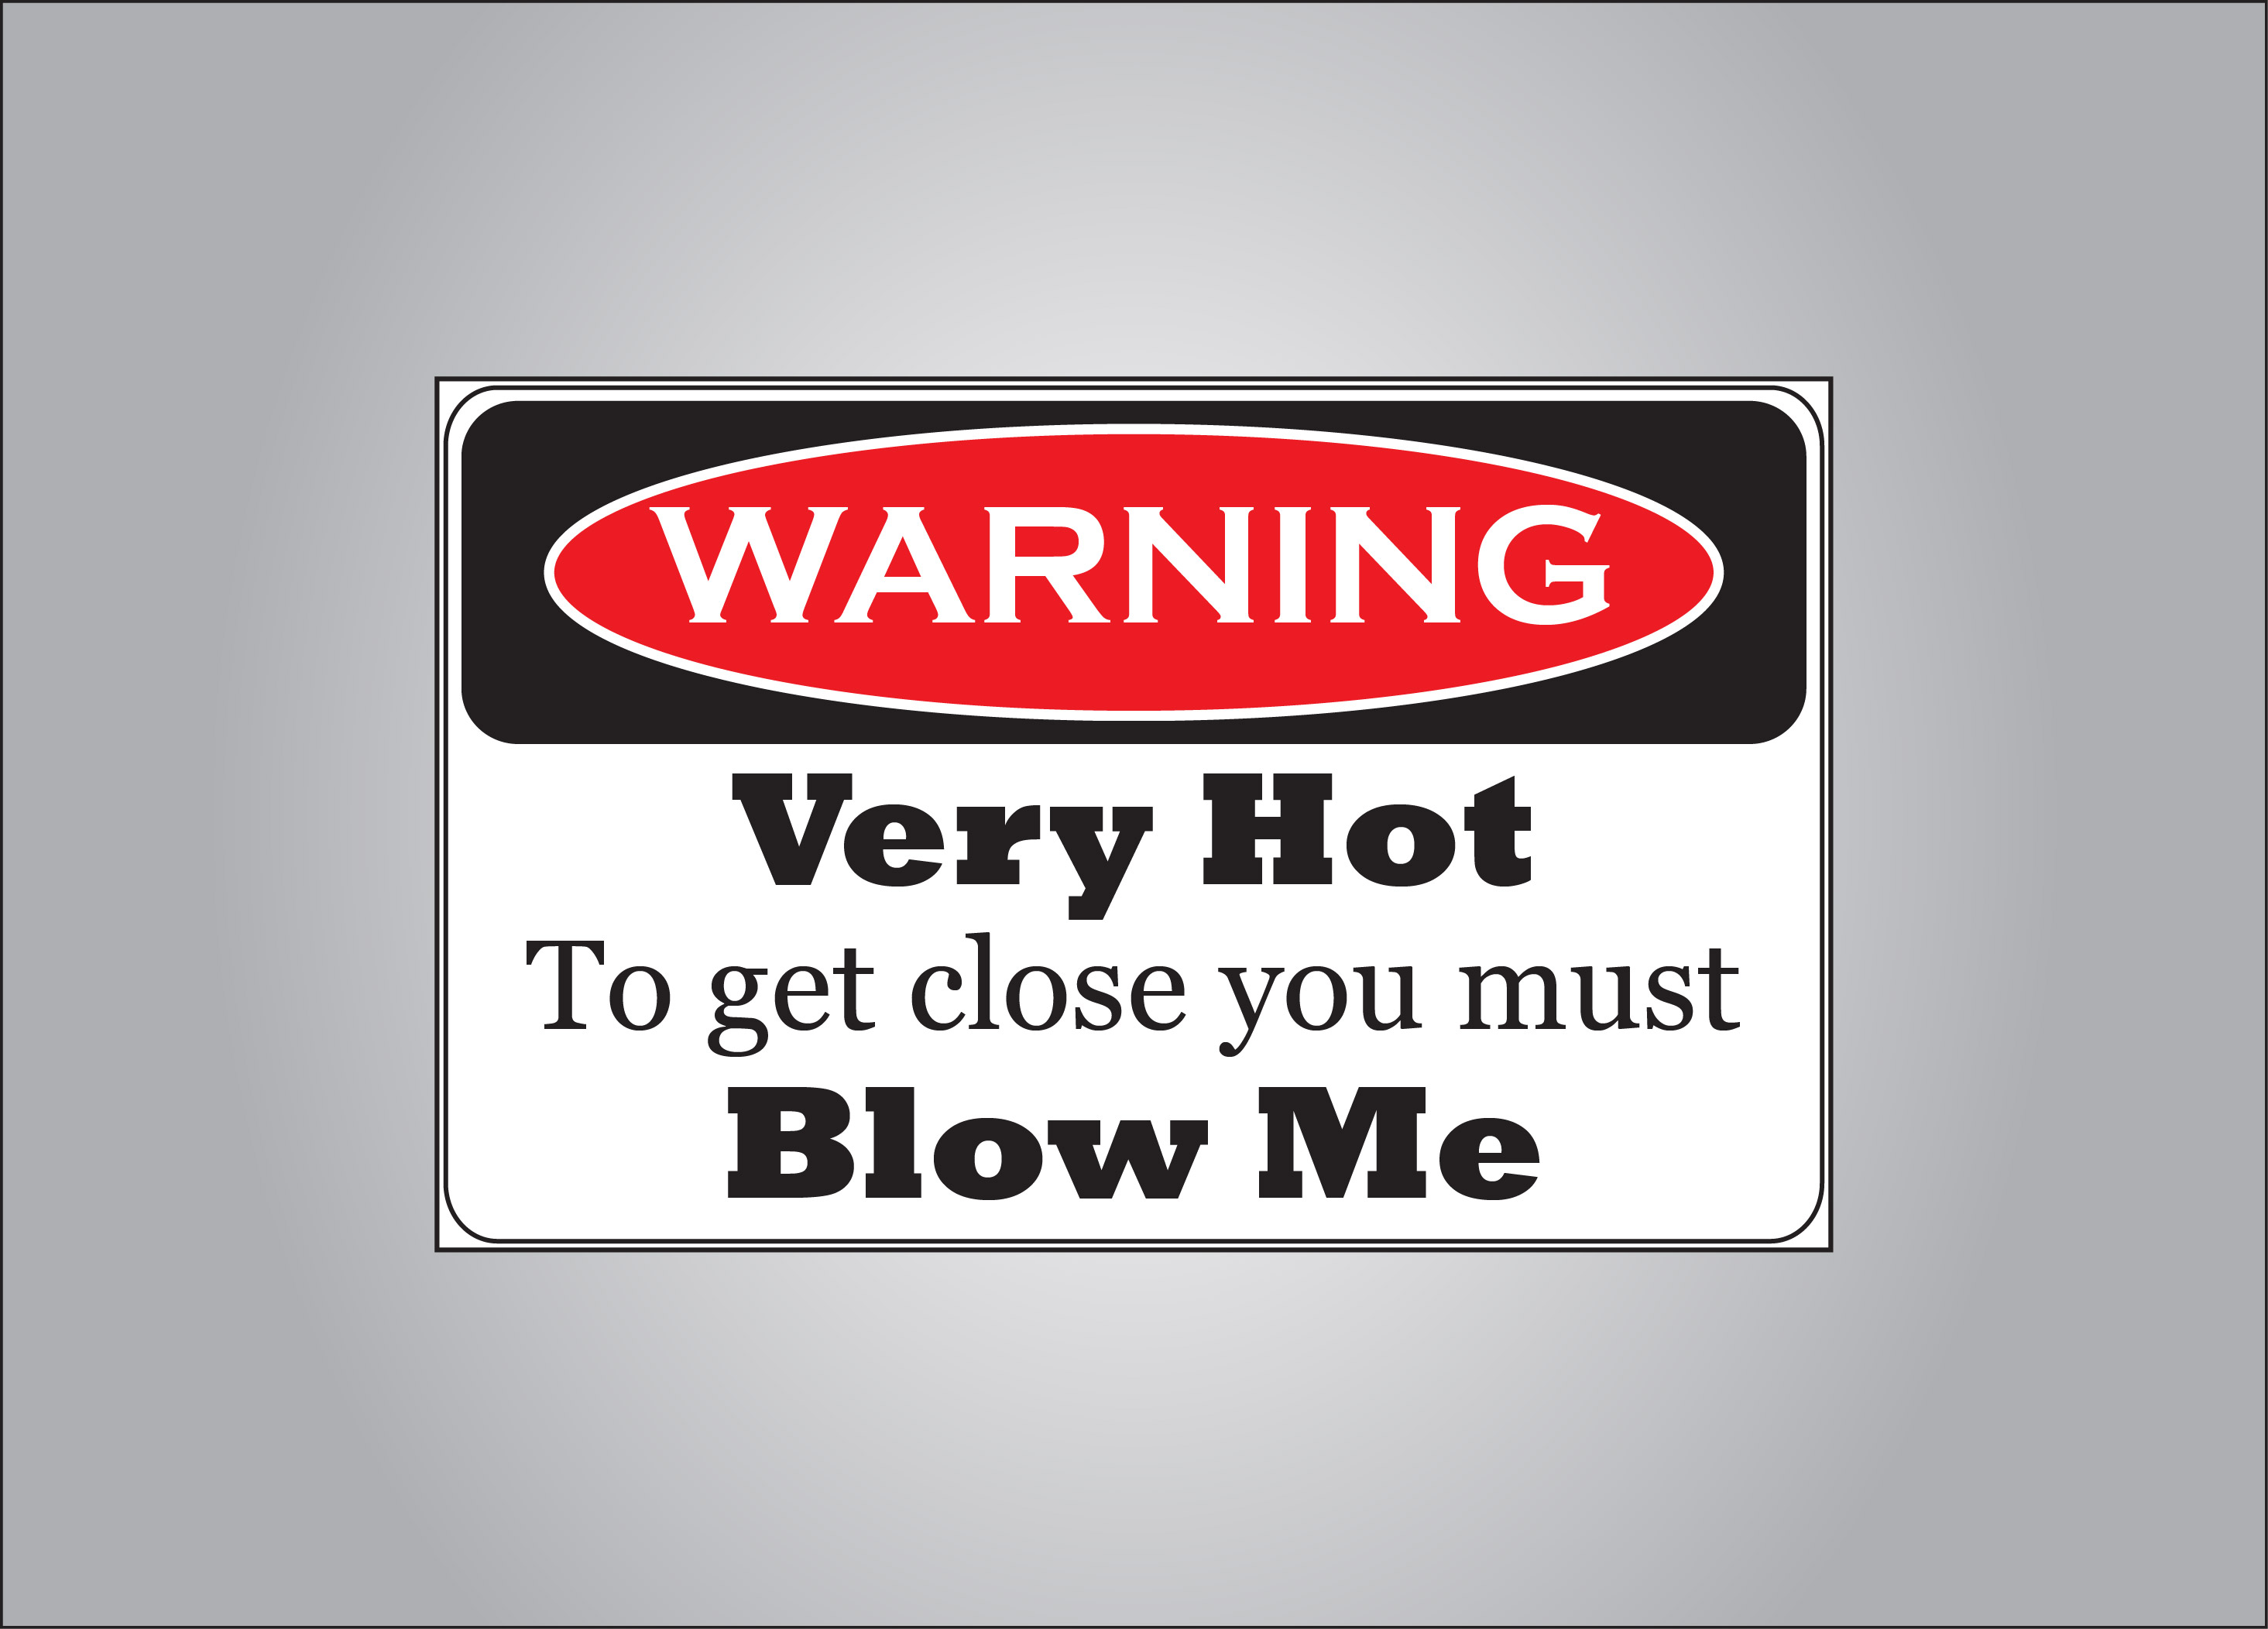 You are soo hot you need to come with a warning.